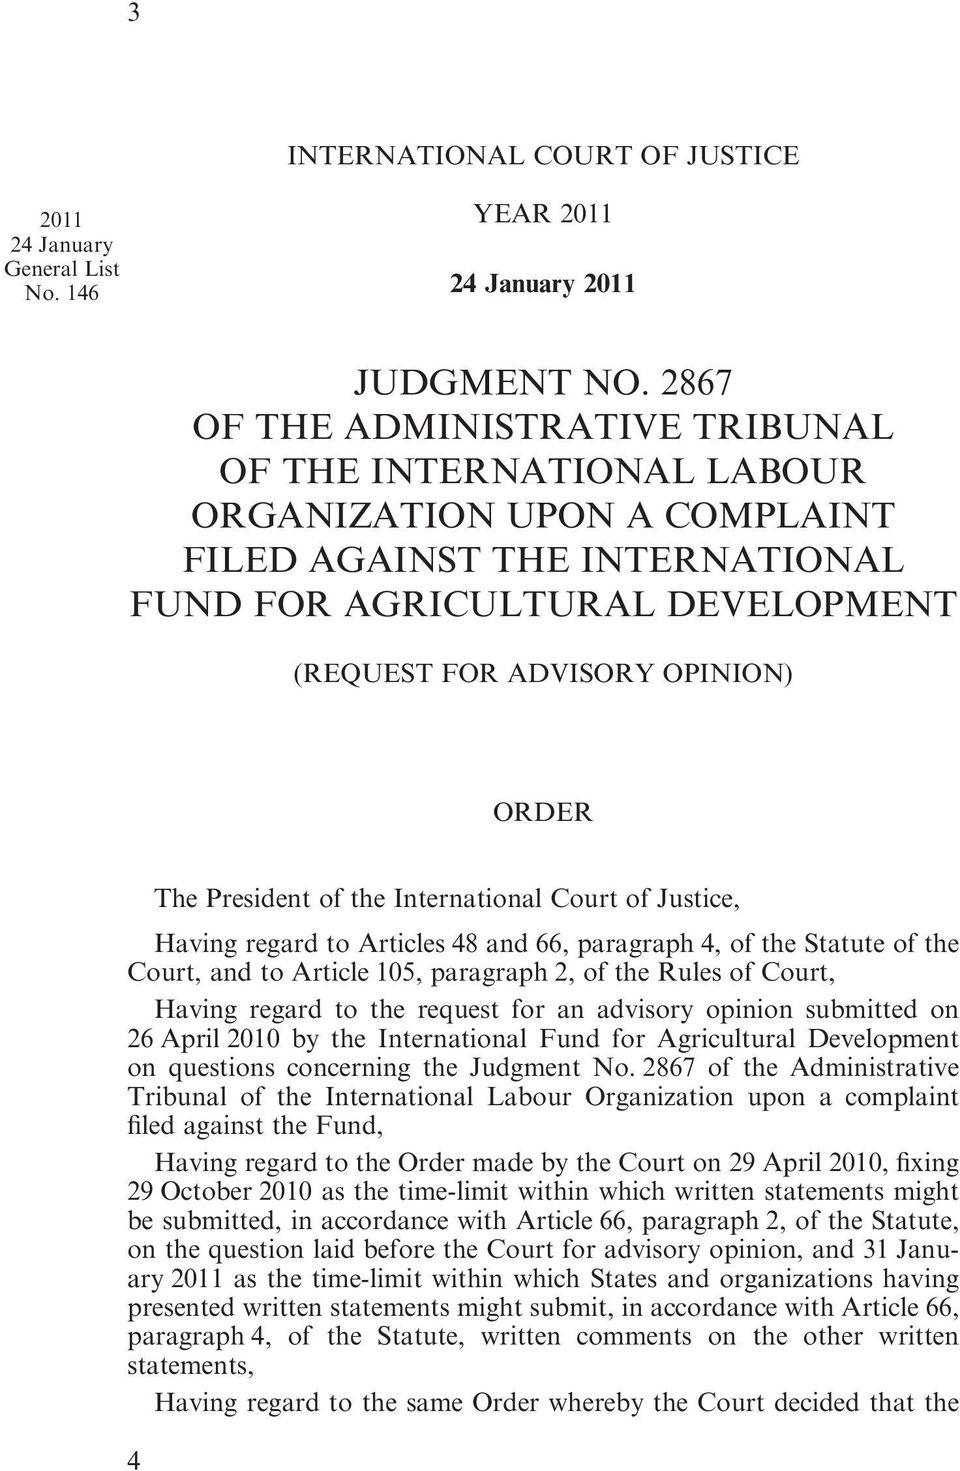 The President of the International Court of Justice, Having regard to Articles 48 and 66, paragraph 4, of the Statute of the Court, and to Article 105, paragraph 2, of the Rules of Court, Having